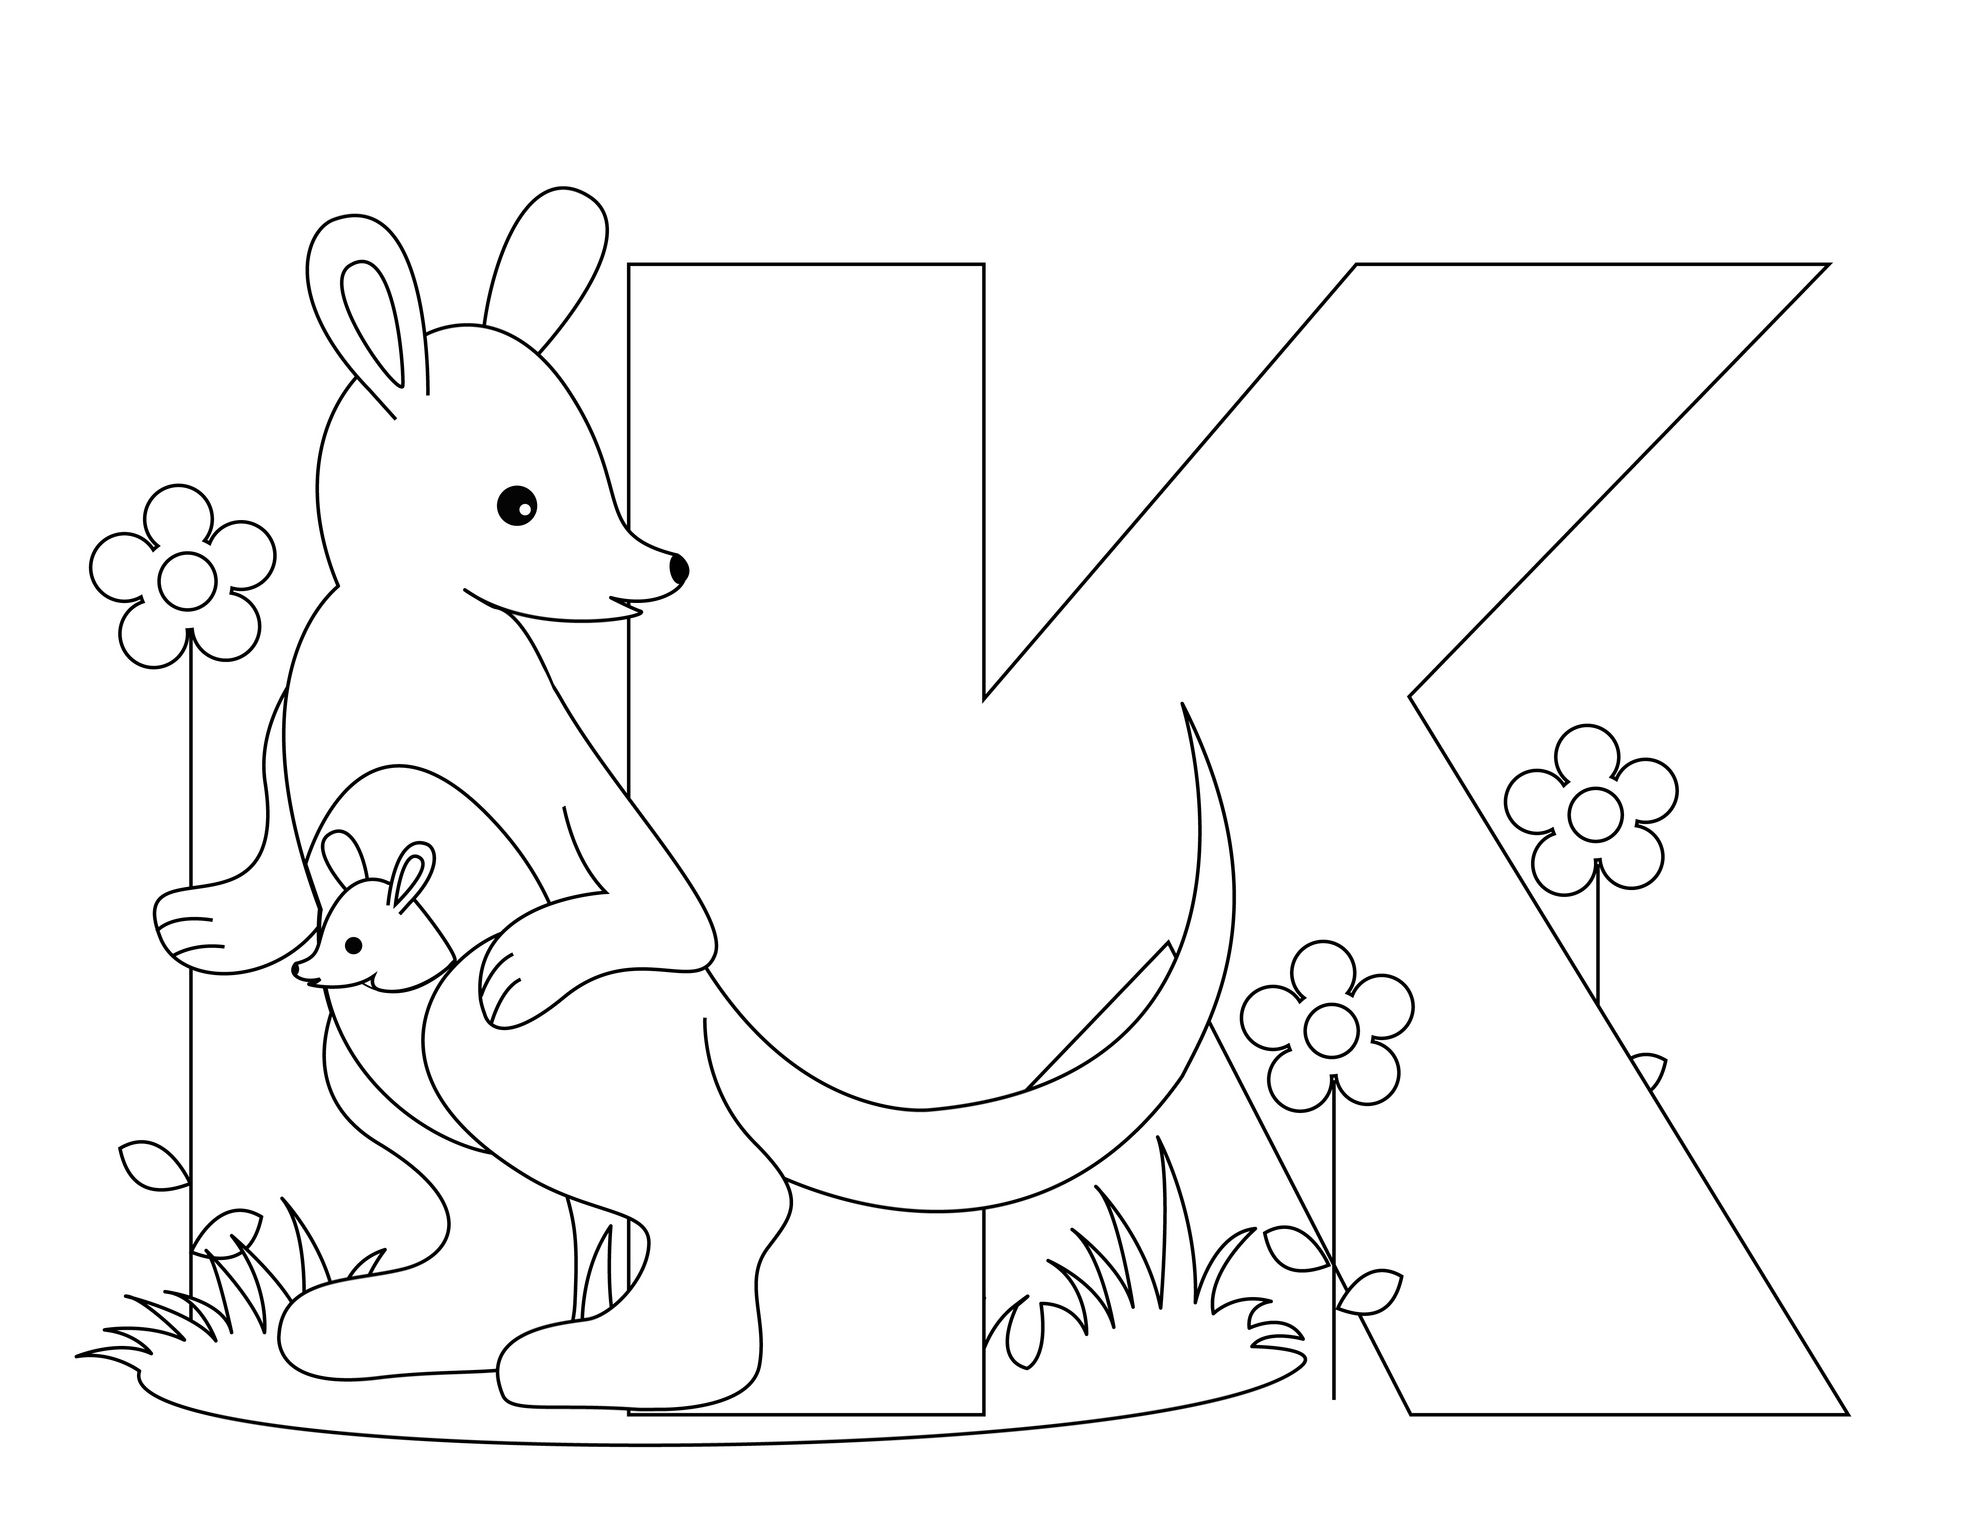 Free Kindergarten Alphabet Worksheets | Animal Alphabet within Letter K Worksheets For Kinder